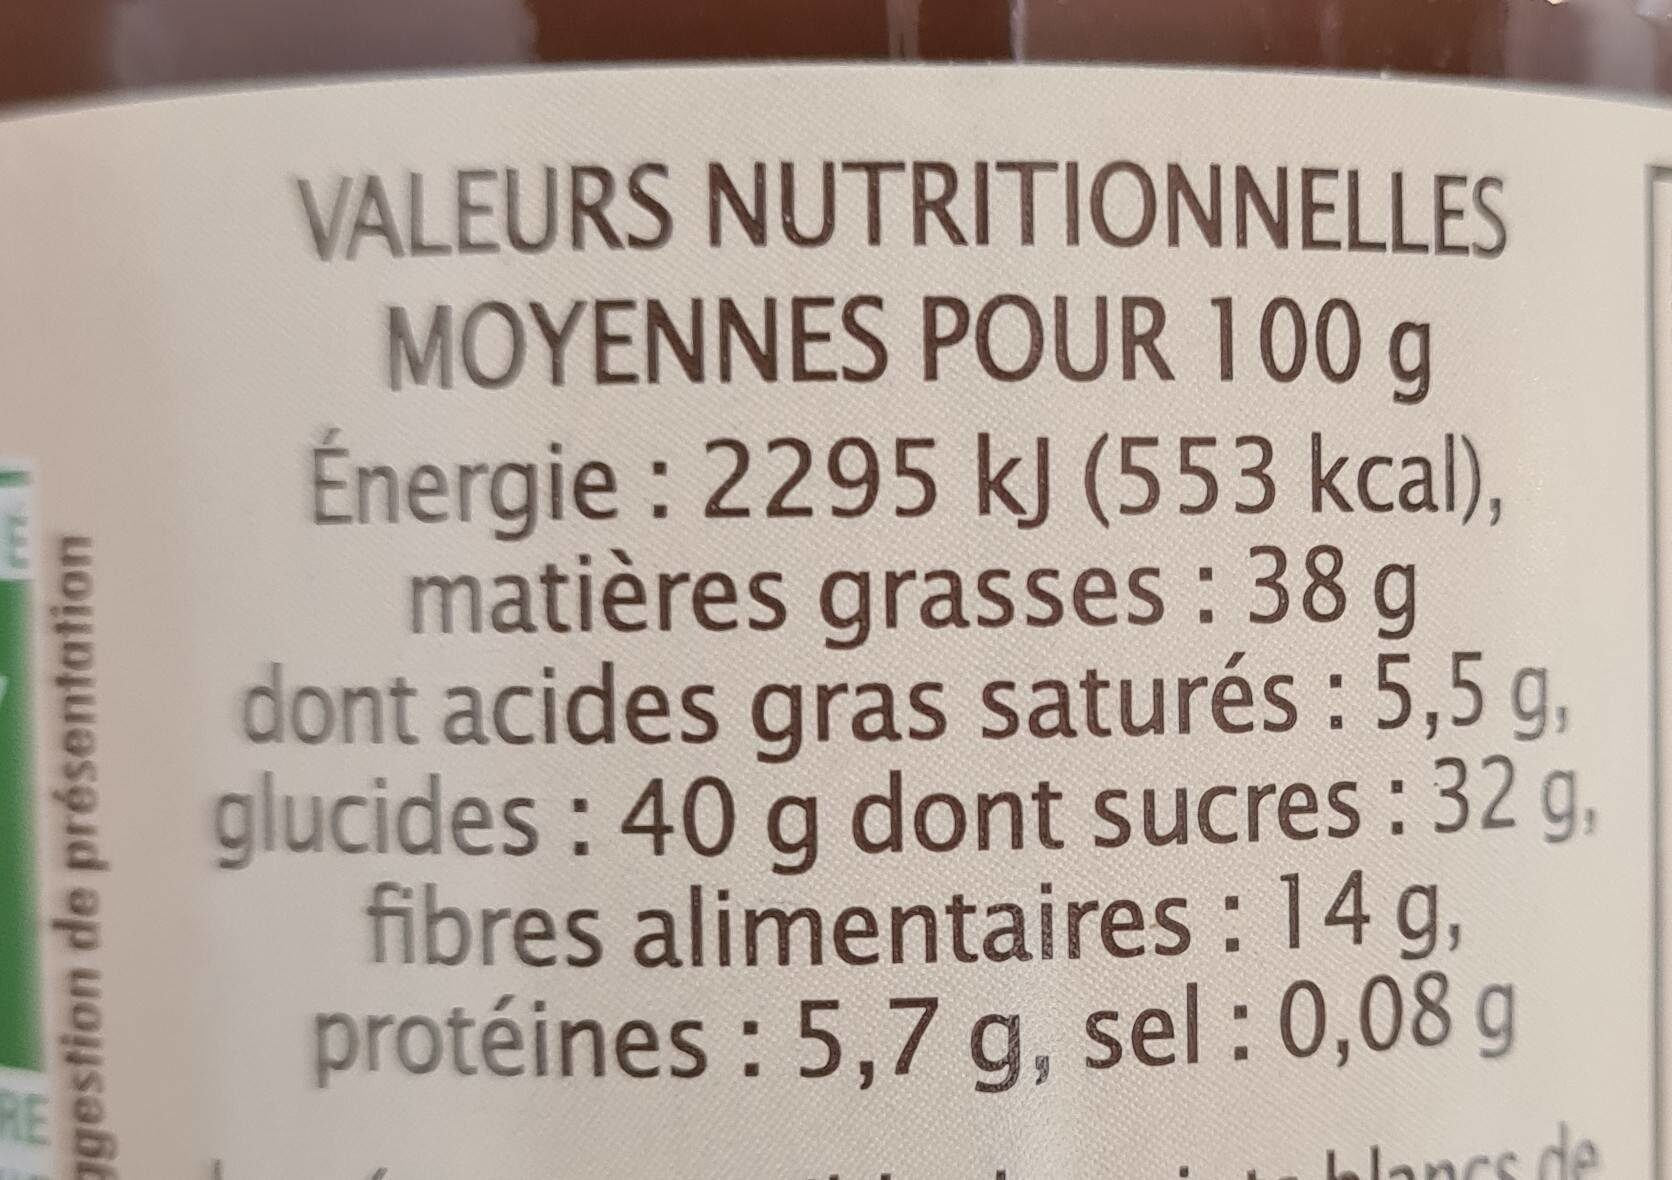 Pate a tartiner choco noisette - Nutrition facts - fr